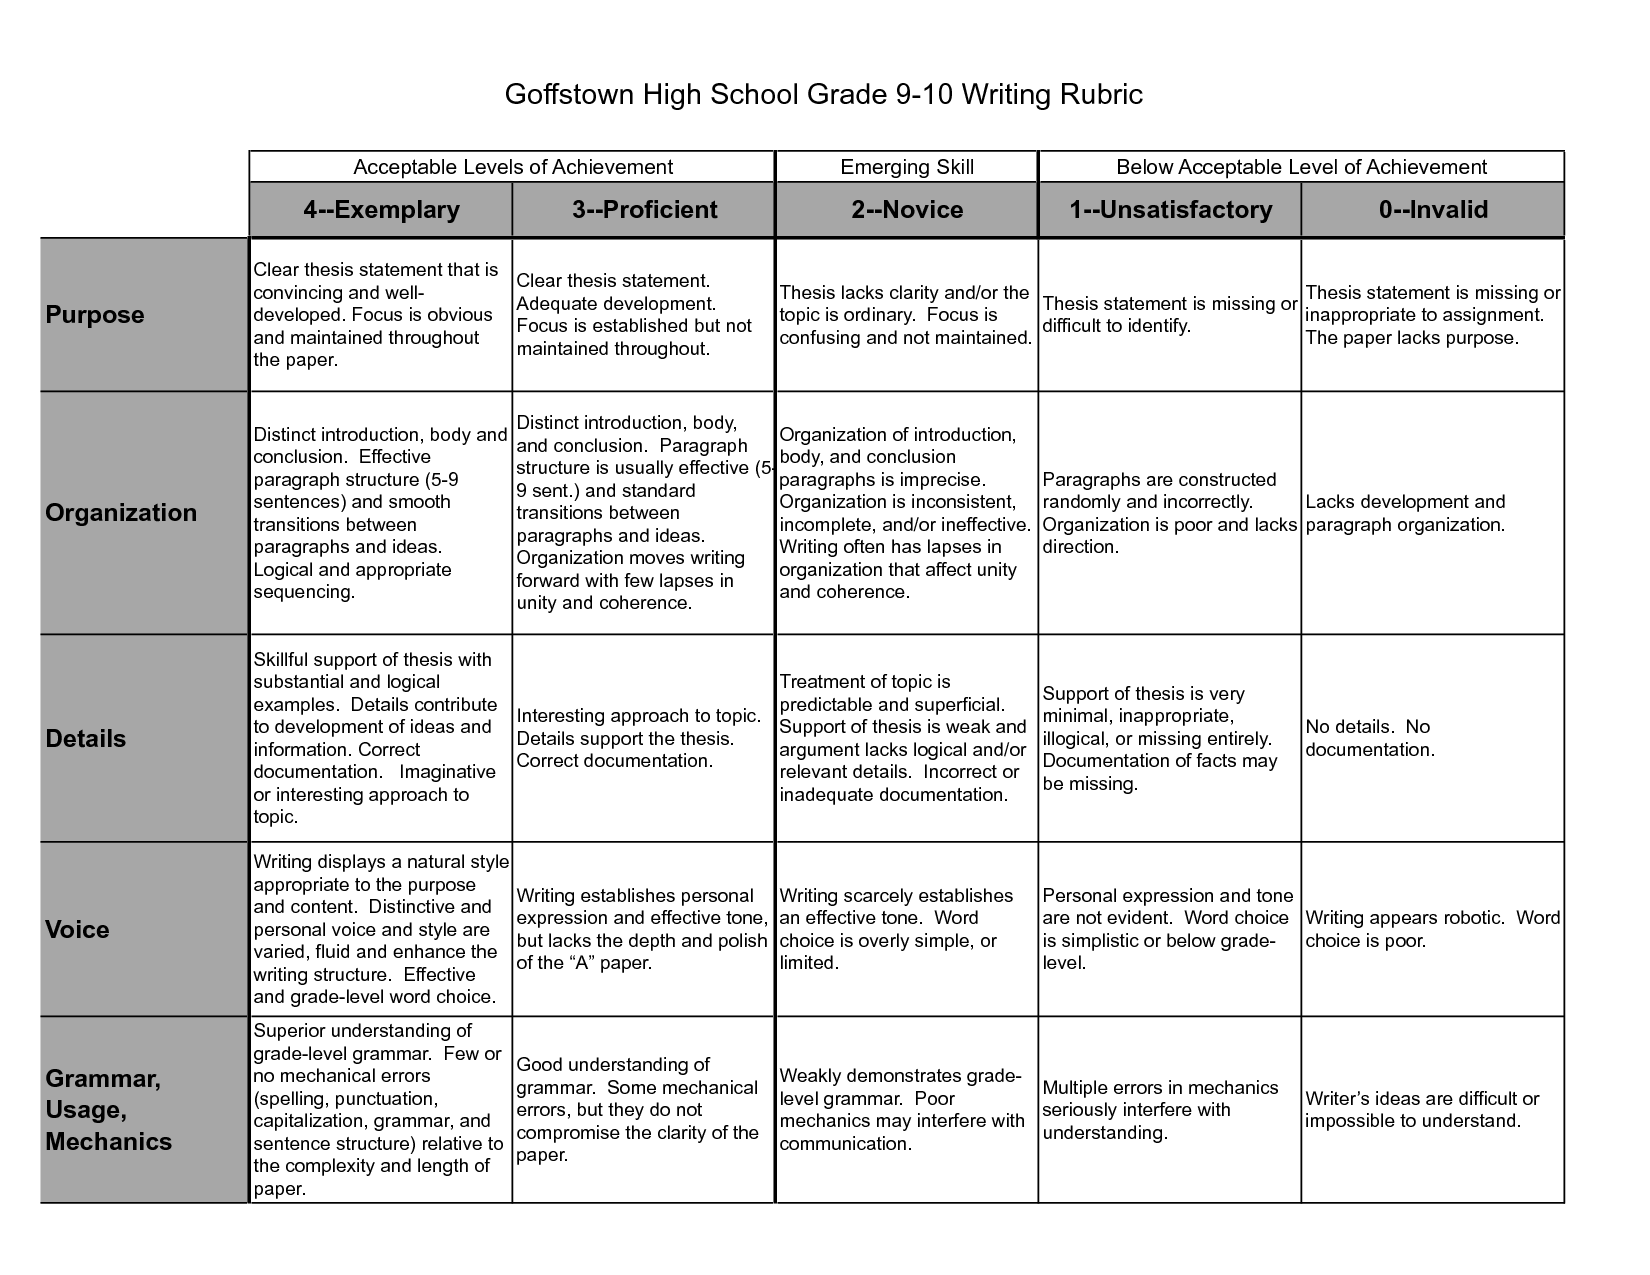 grading rubric compare contrast essay Compare/contrast essay rubric grade/points 1 2 3 4 thesis read more about essay, similarities, differences, thesis, significant and organizing.